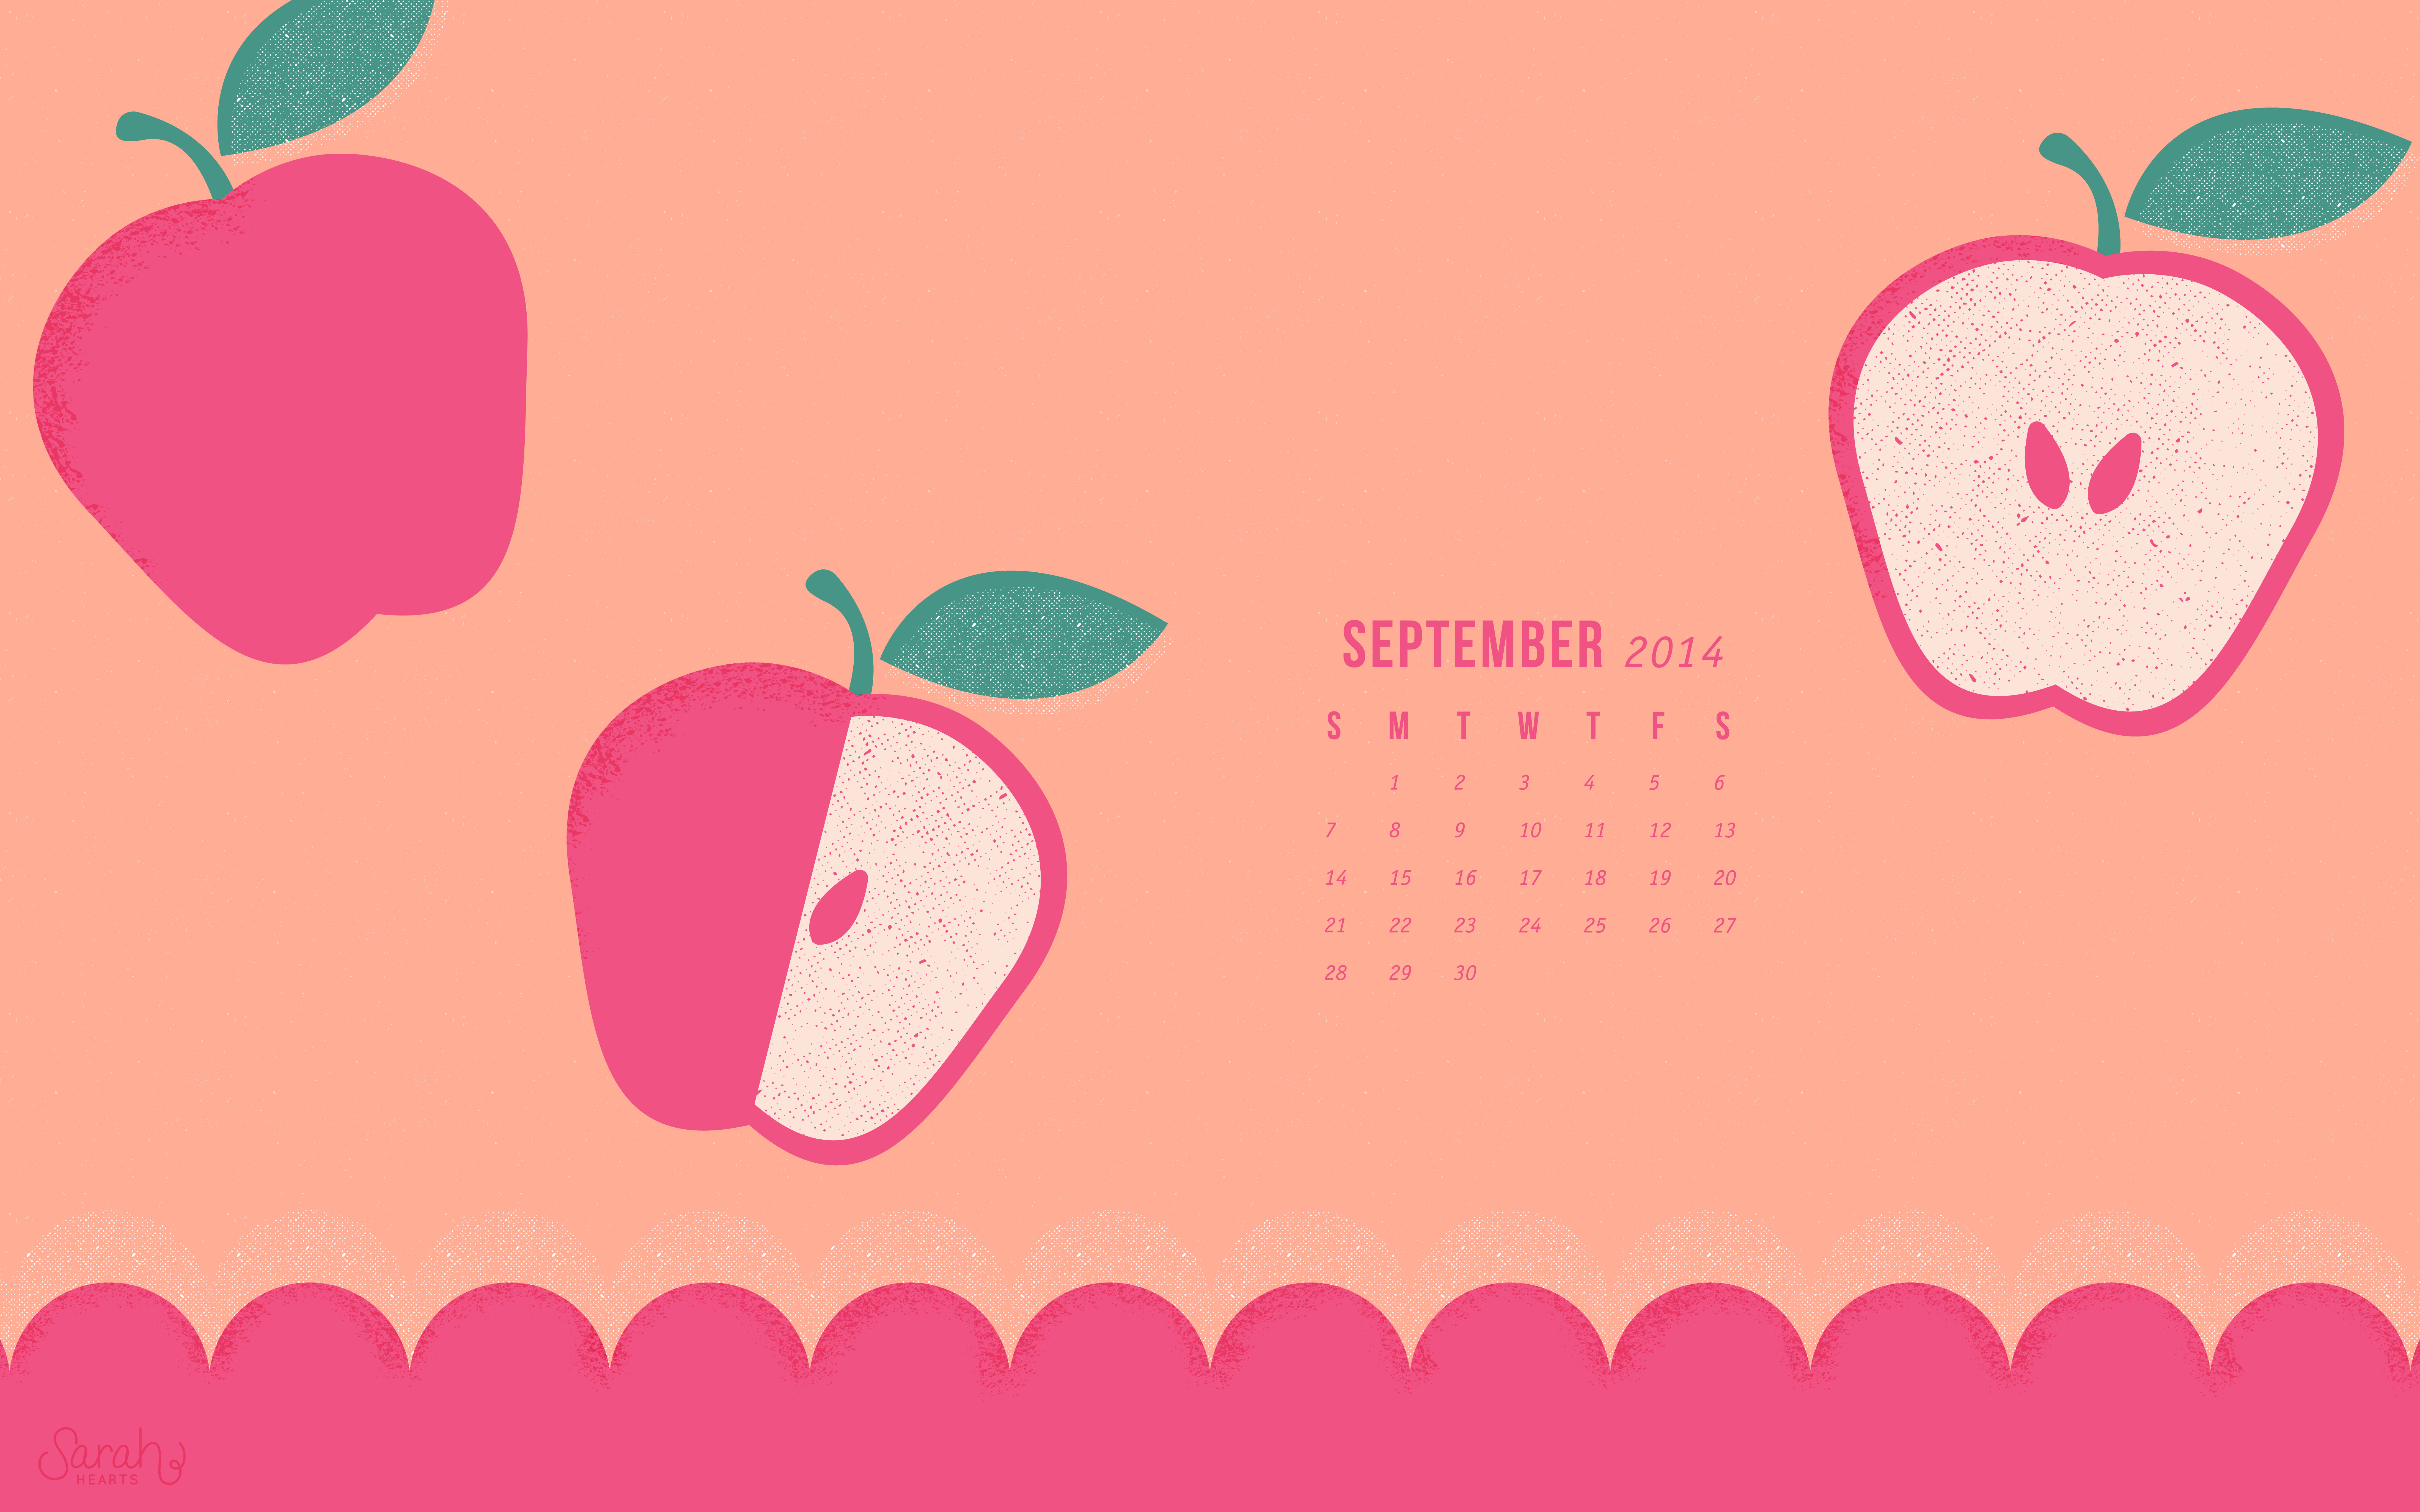 Fall Calendar Desktop Wallpaper September 2014 Calendar Wallpaper Sarah Hearts